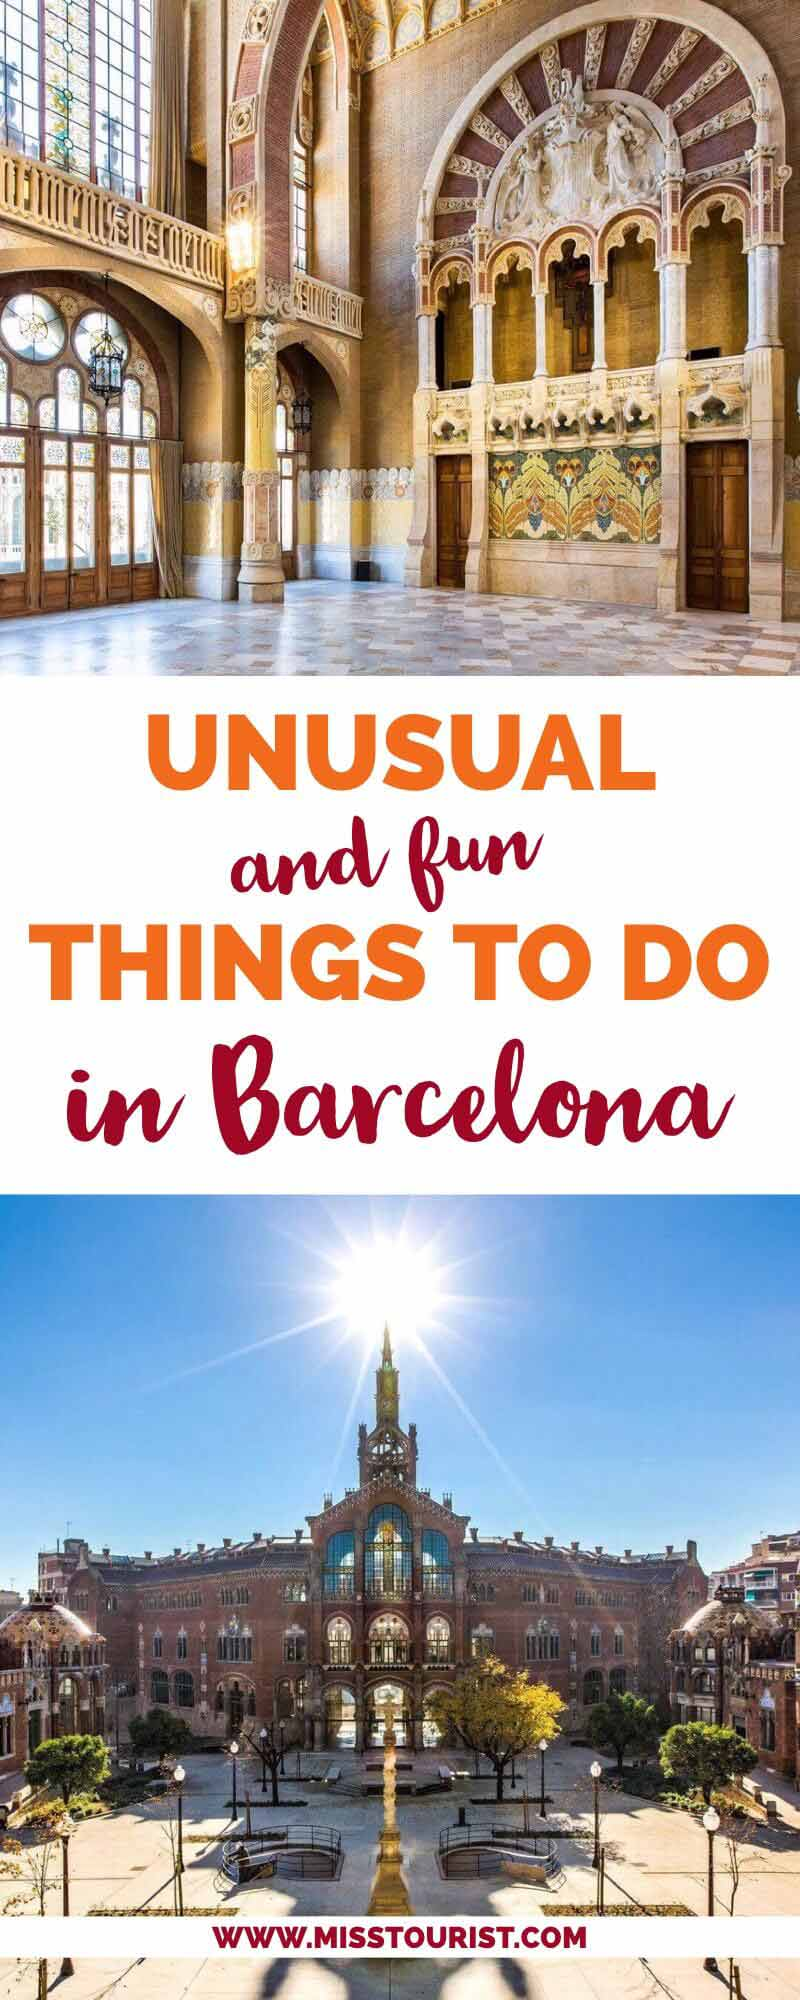 Unusual and Fun Things To Do in Barcelona Spain